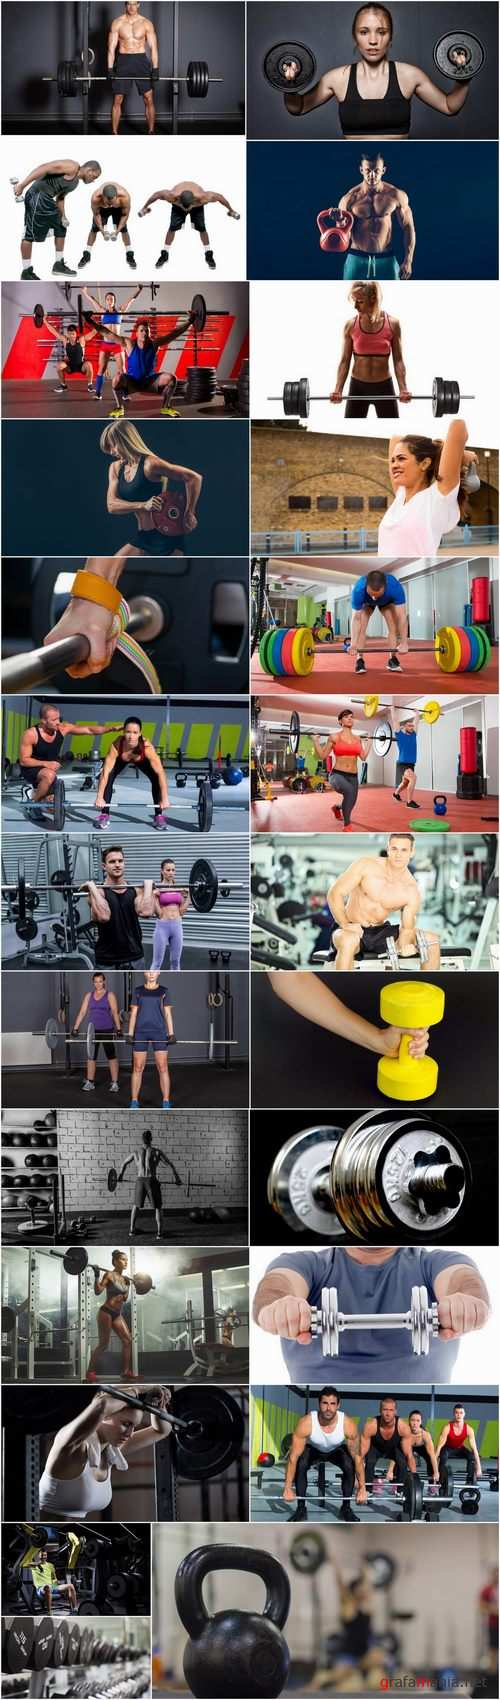 Sports fitness training gym sports equipment dumbbell barbell exerciser 25 HQ Jpeg